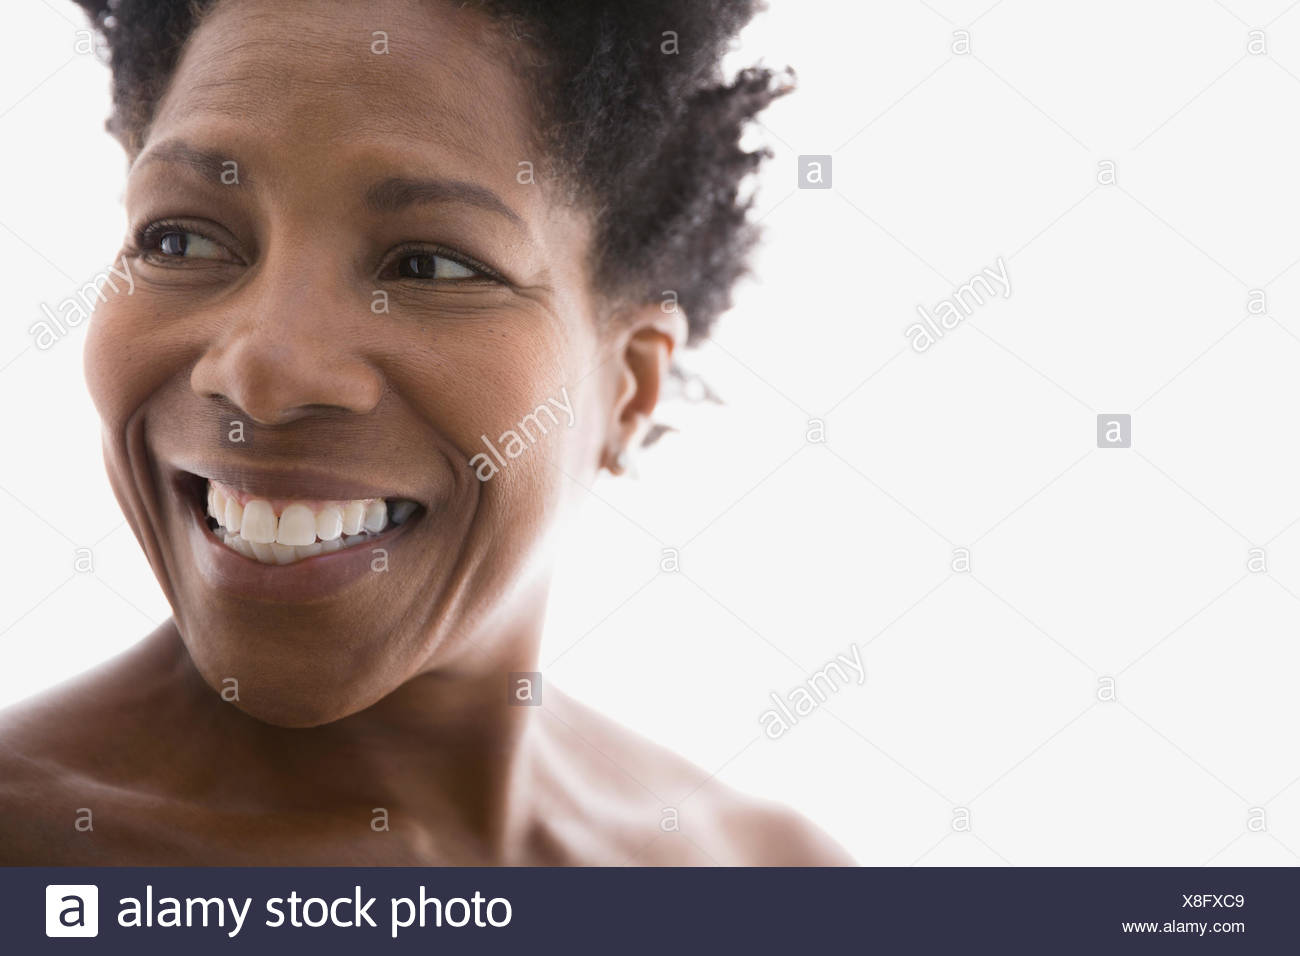 Close up of smiling woman looking away - Stock Image